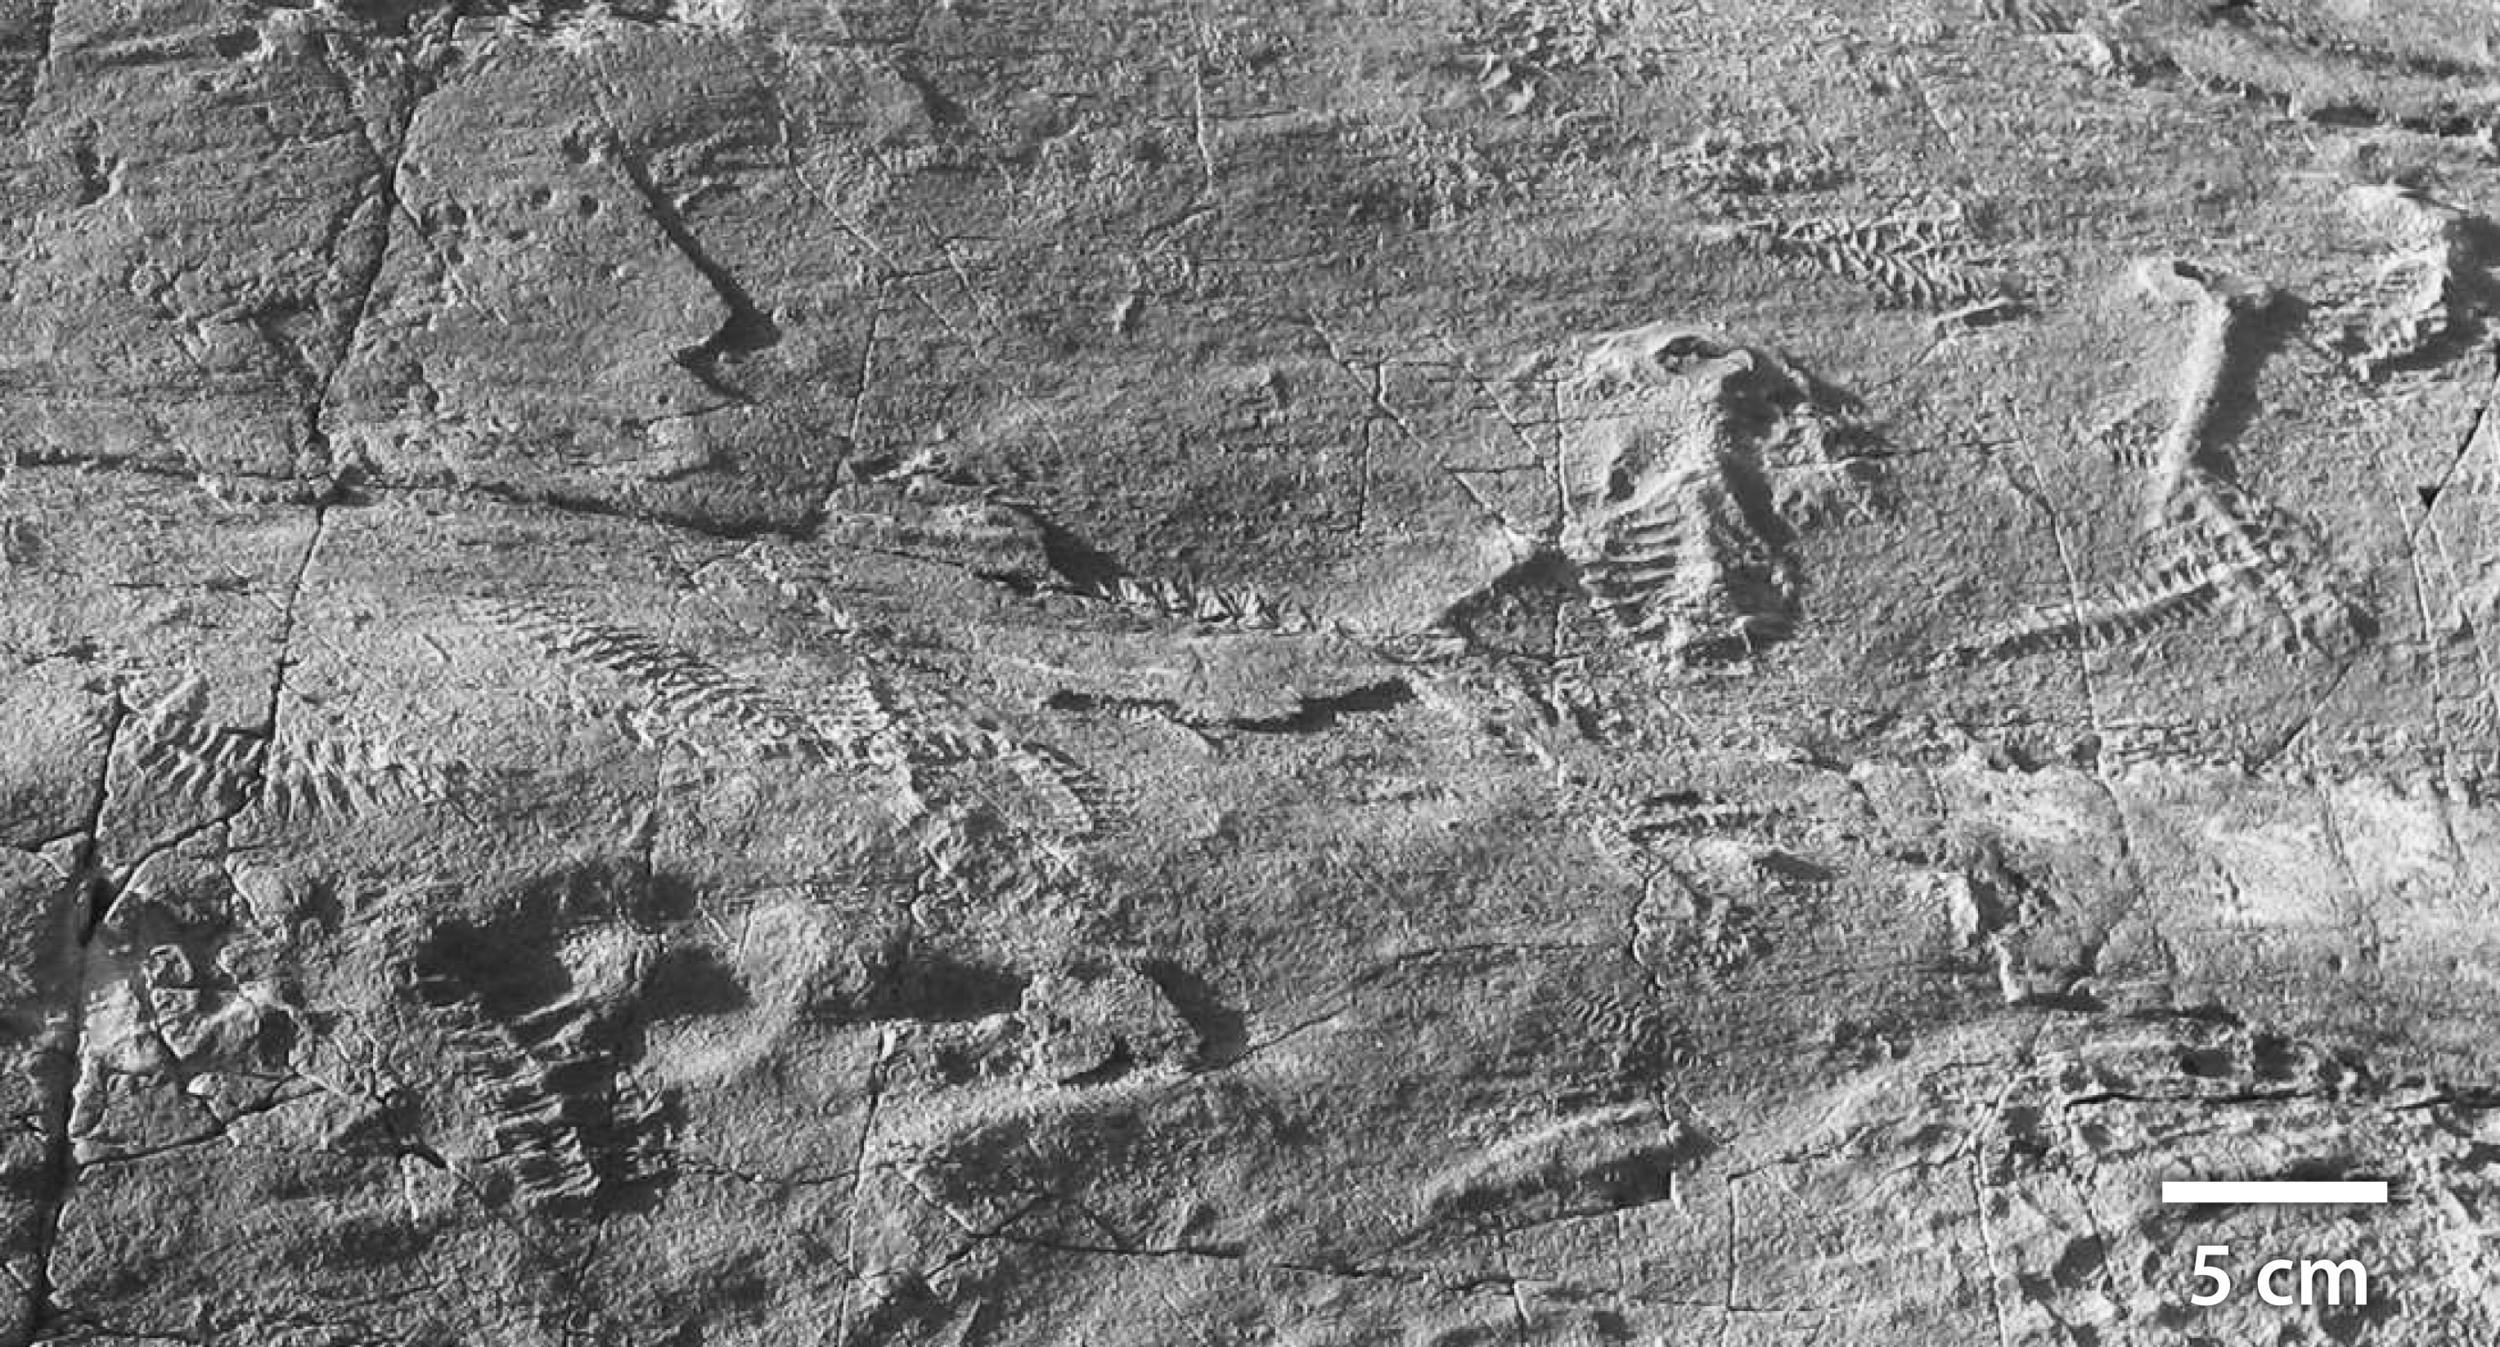 A close-up view of one of the key Ediacaran localities: 'E' surface, Mistaken Point, Newfoundland, Canada (565 Ma). At the top right, various frondose organisms including Charniodiscus can be seen, while a cluster of Fractofusus can be seen at the bottom left, exhibiting the multiple levels of branching. This community lived in deep water, and is thought to have lived off dissolved organic carbon found in the water column.